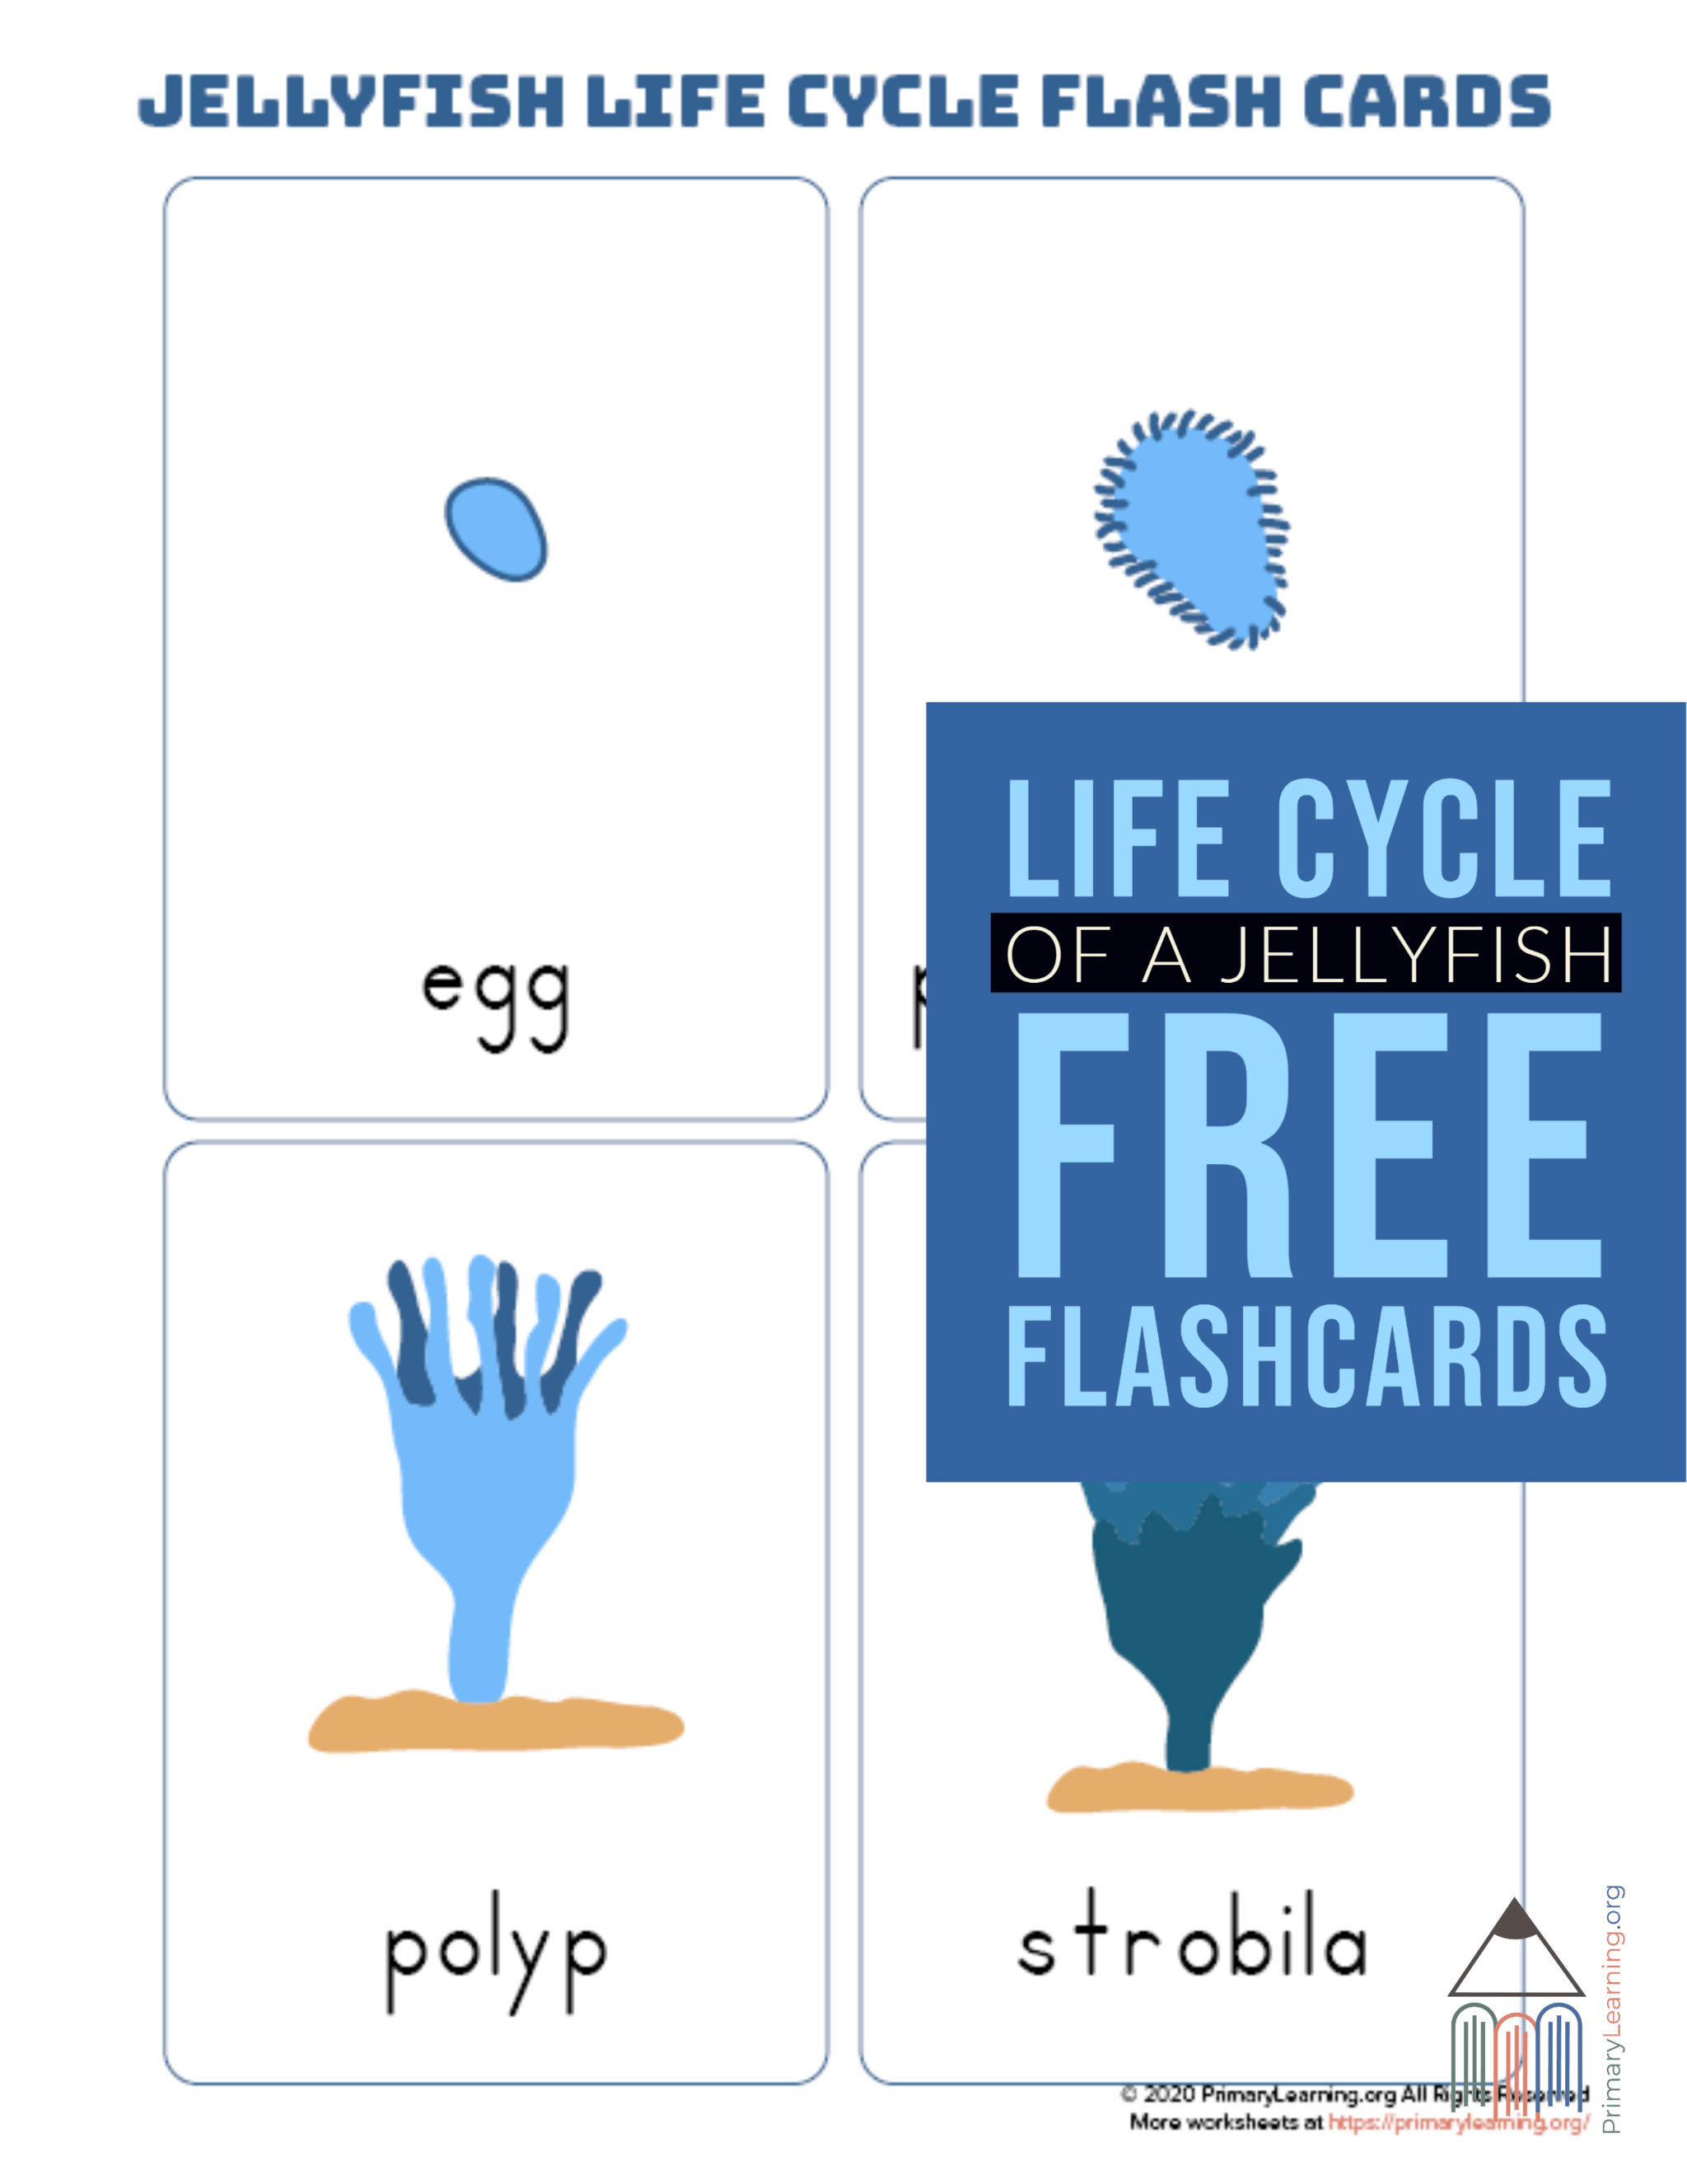 Jellyfish Life Cycle Flashcards